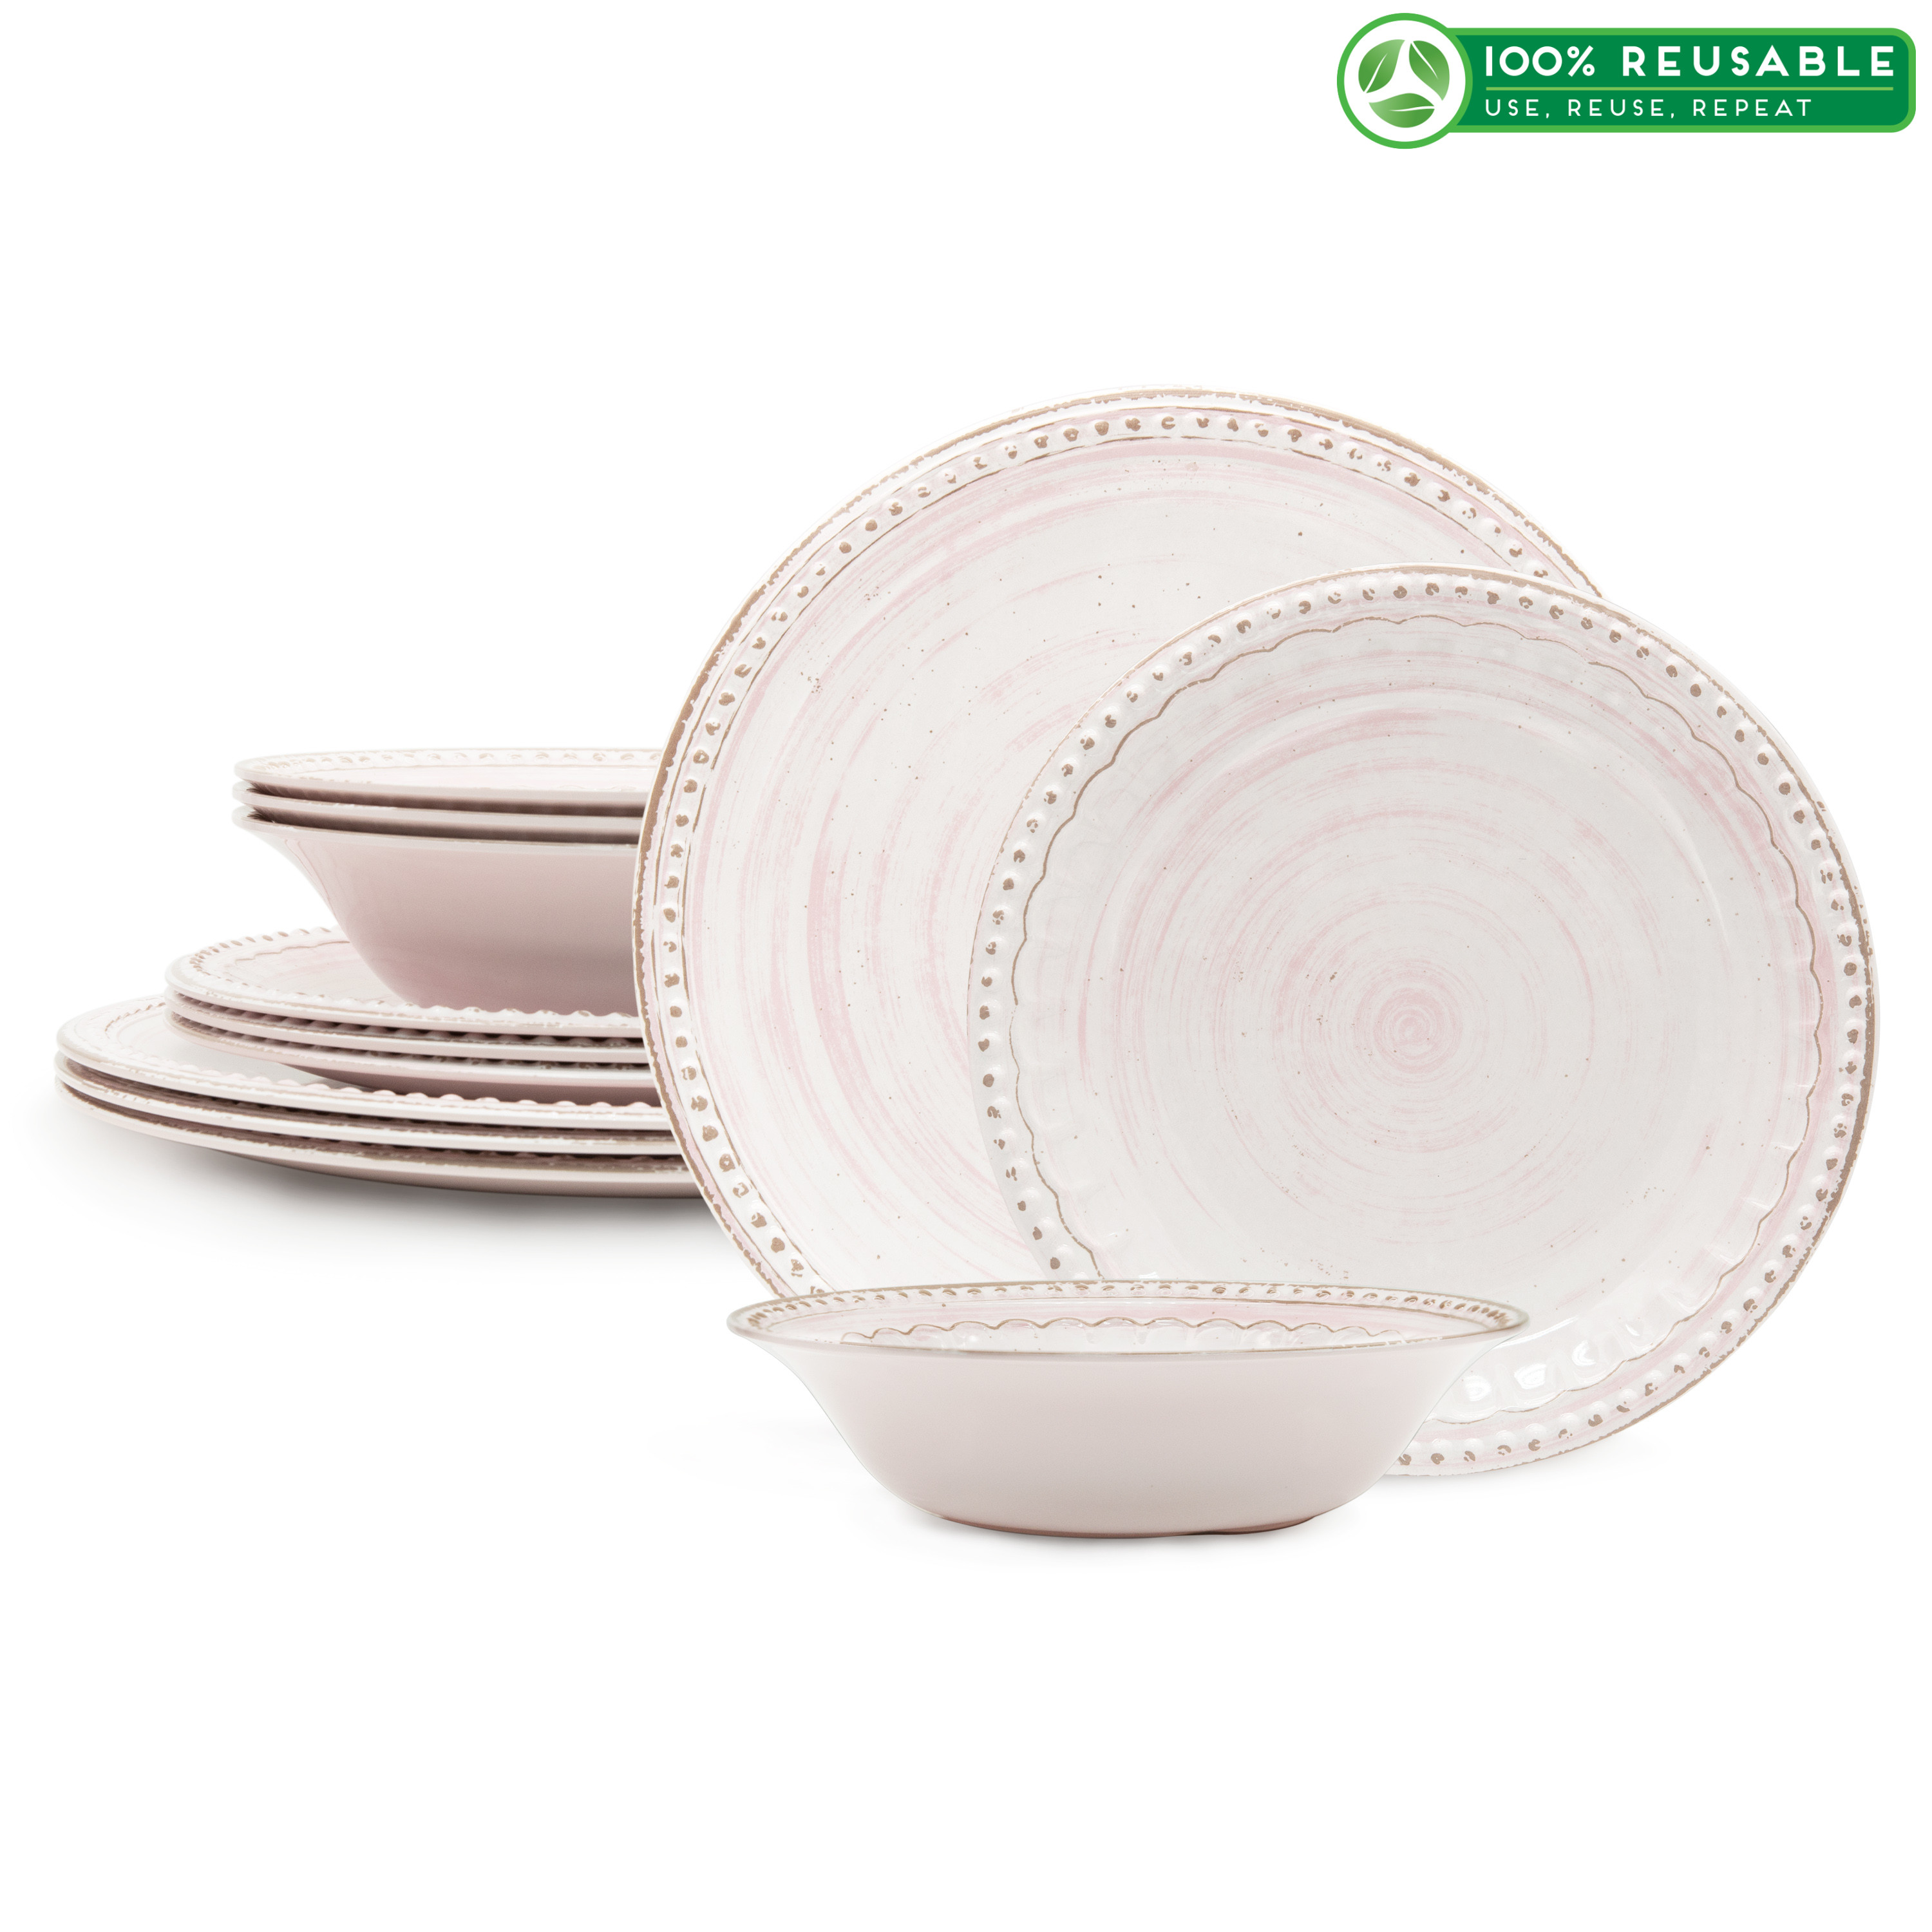 French Country Plate & Bowl Sets, Primrose, 12-piece set image